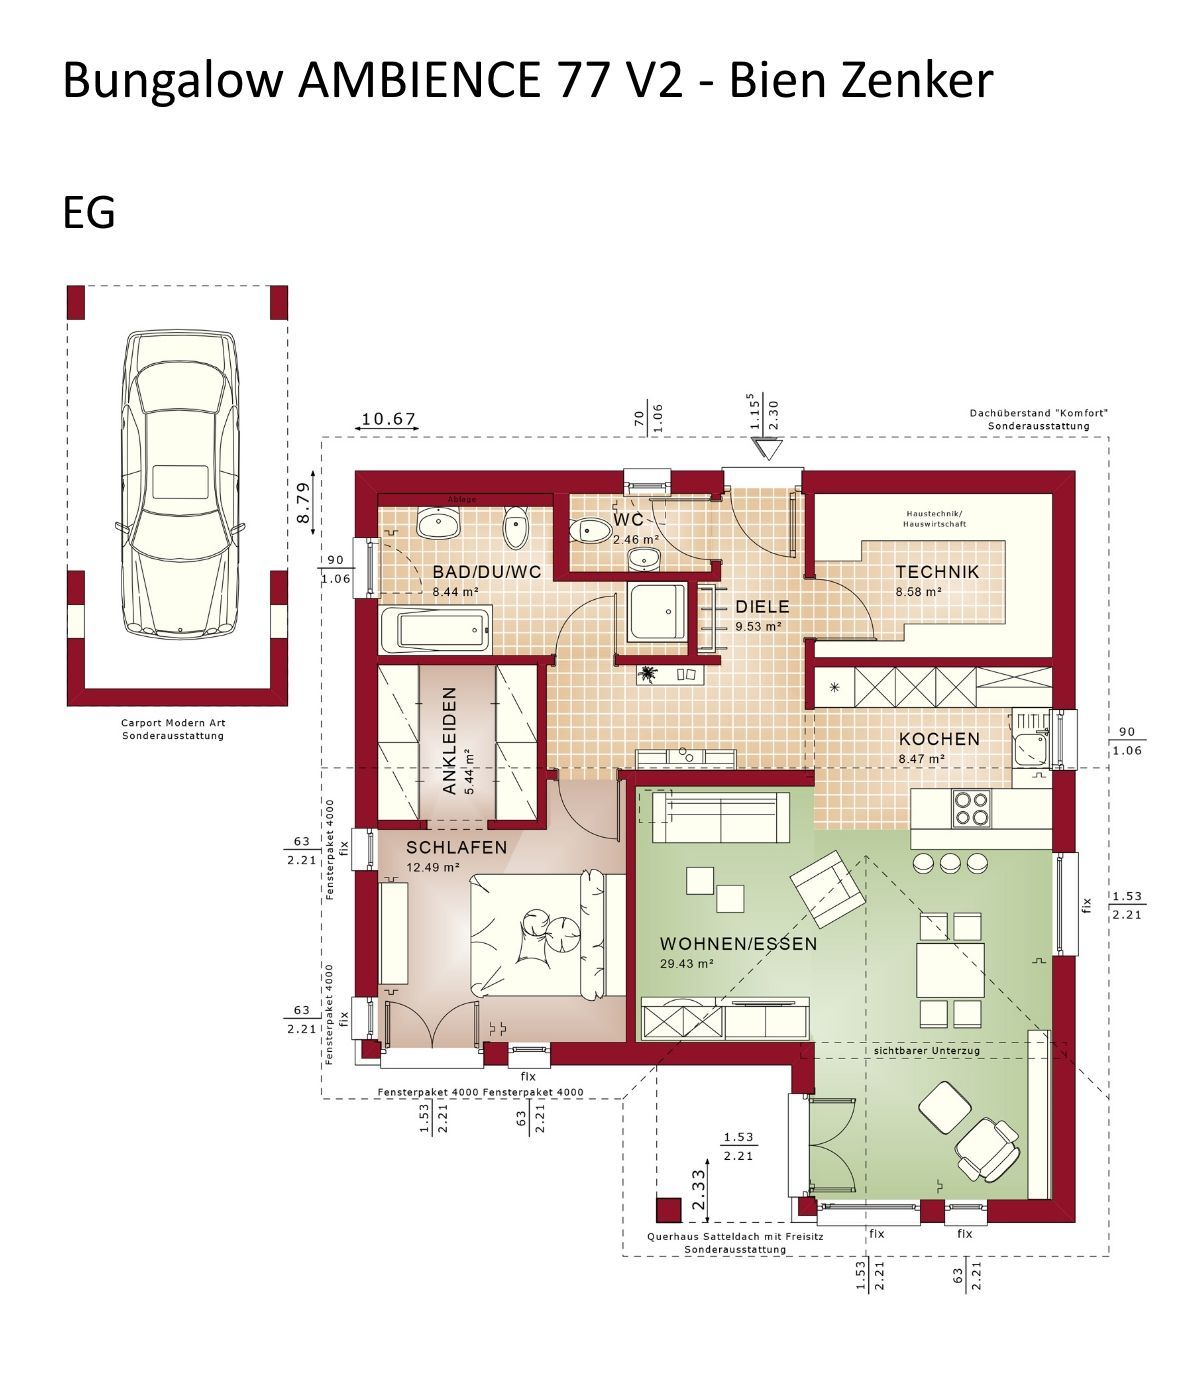 Bungalow Haus Mit Satteldach Und Carport Fertighaus Bauen Grundriss Einfamilienhaus Solution 78 V3 Living Ha Small House Plans Architecture House House Plans